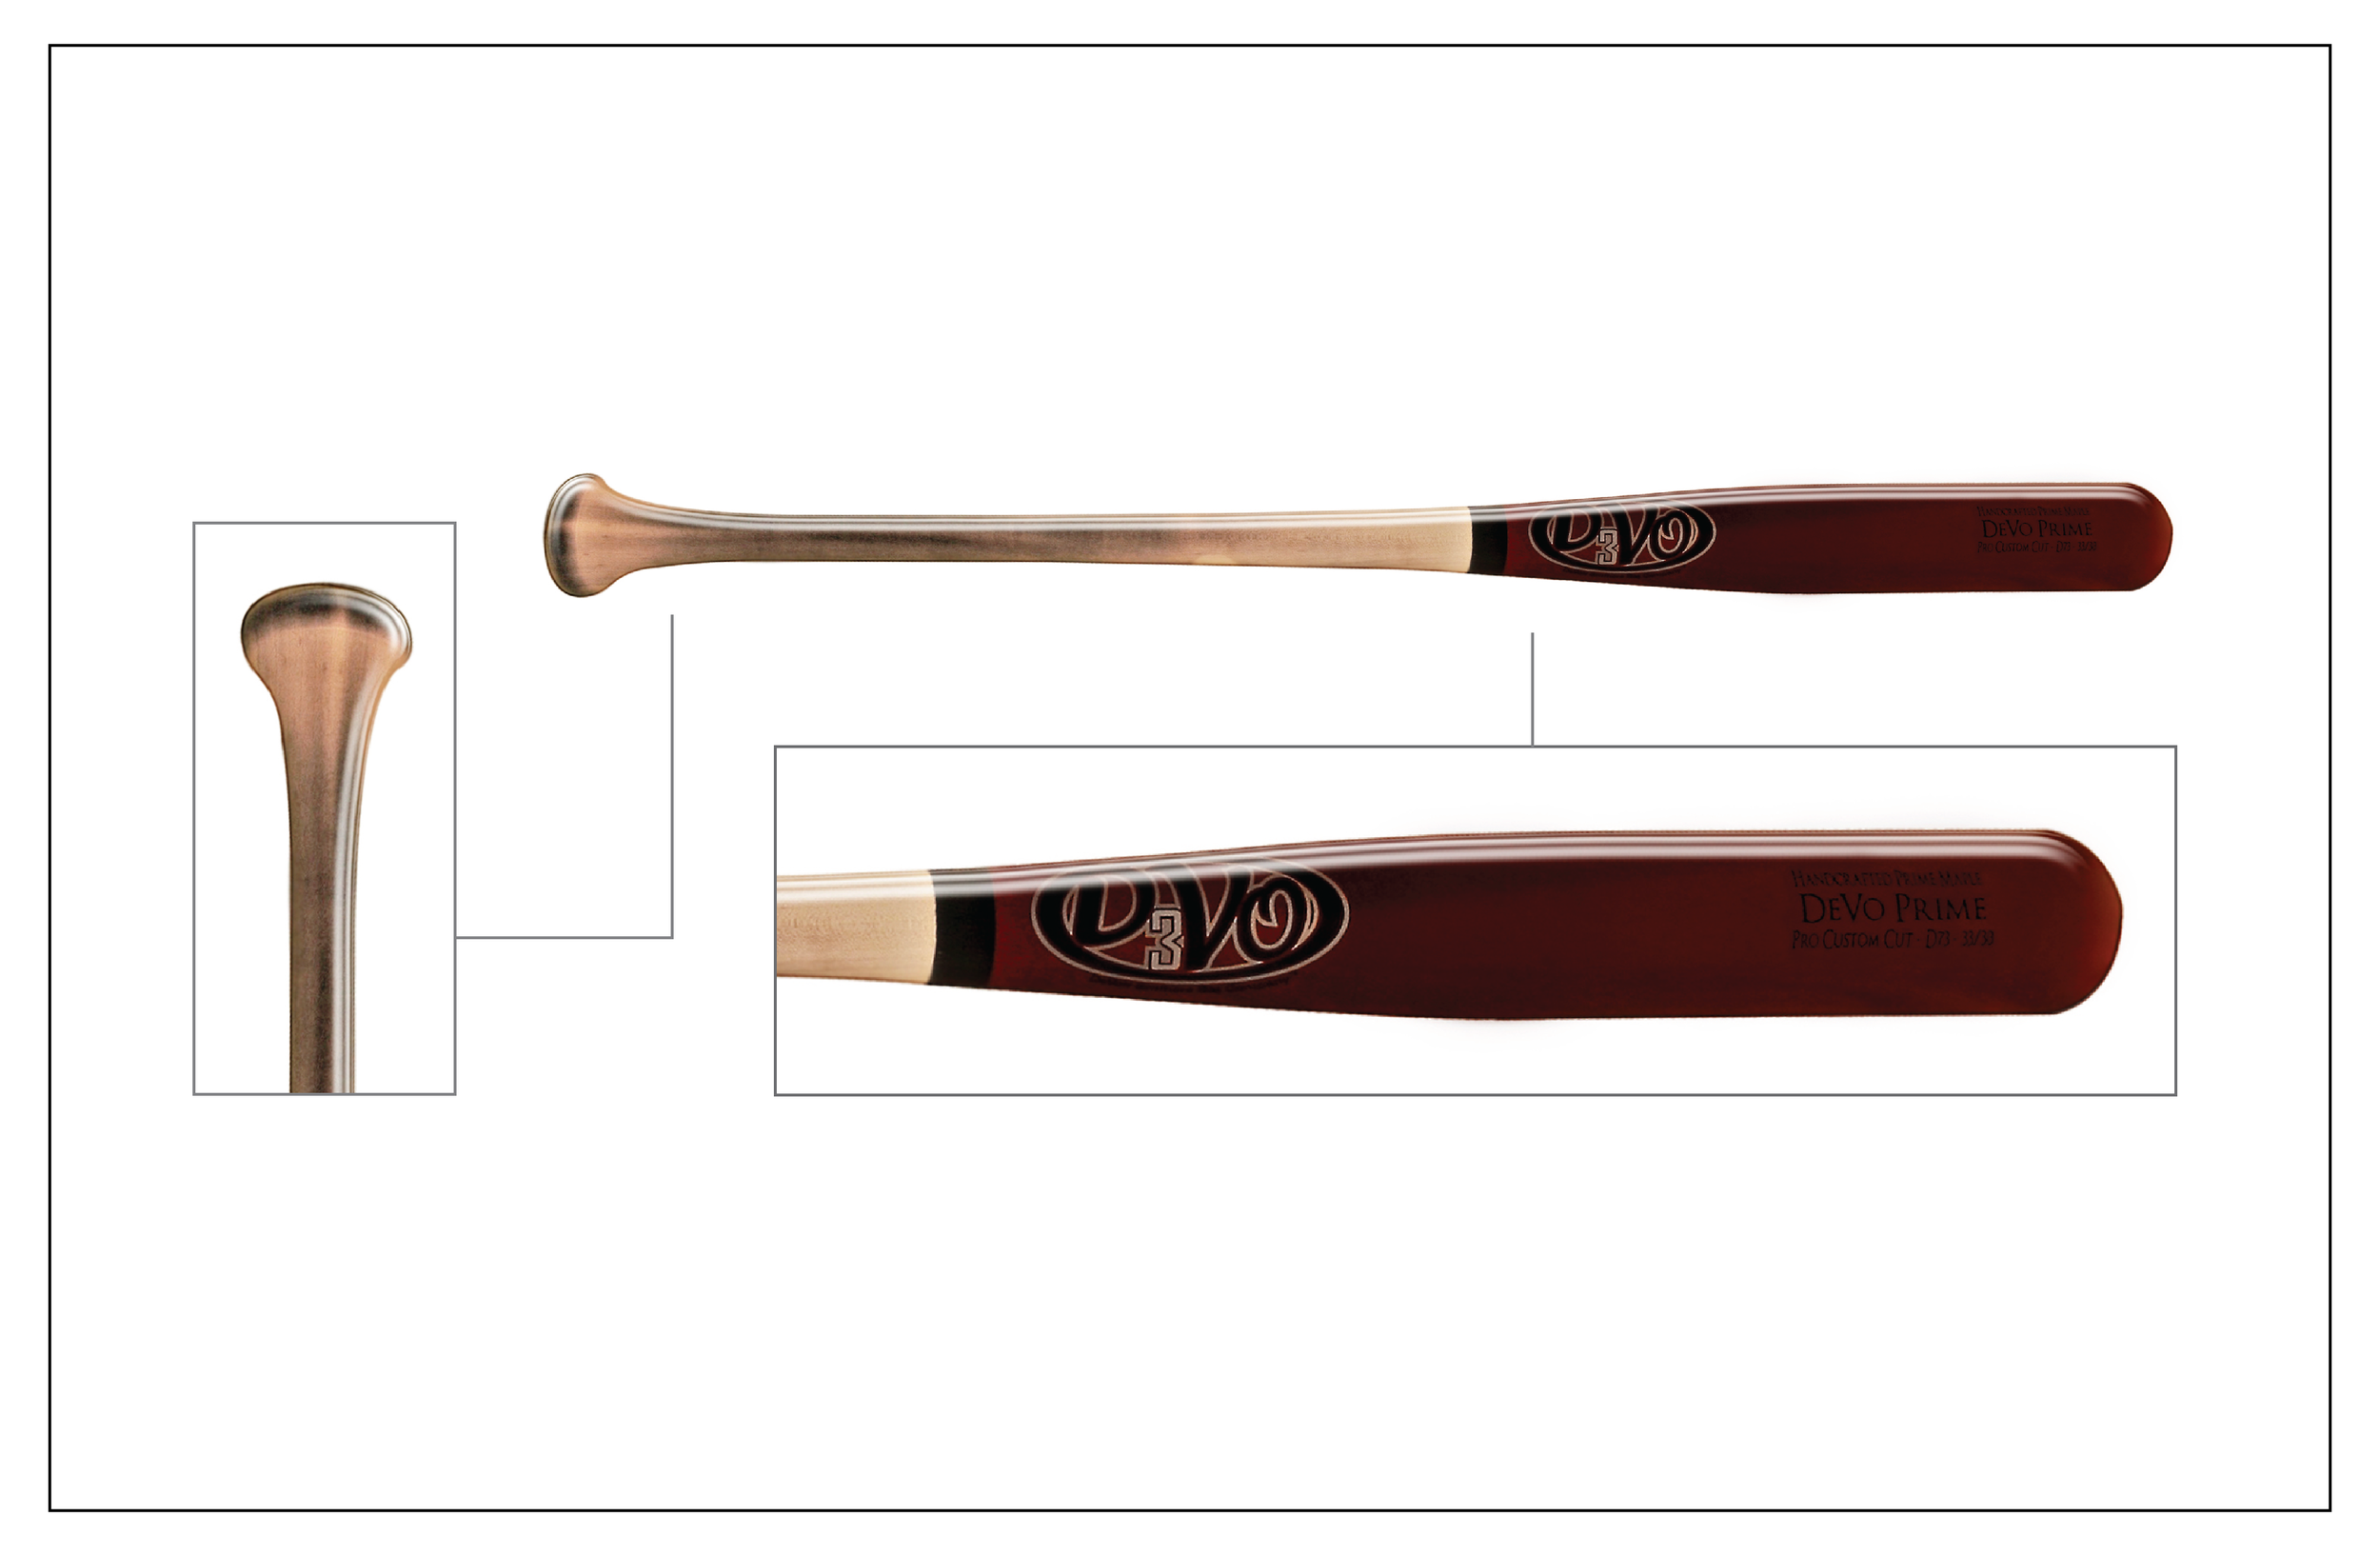 DeVo Bats D73_Display